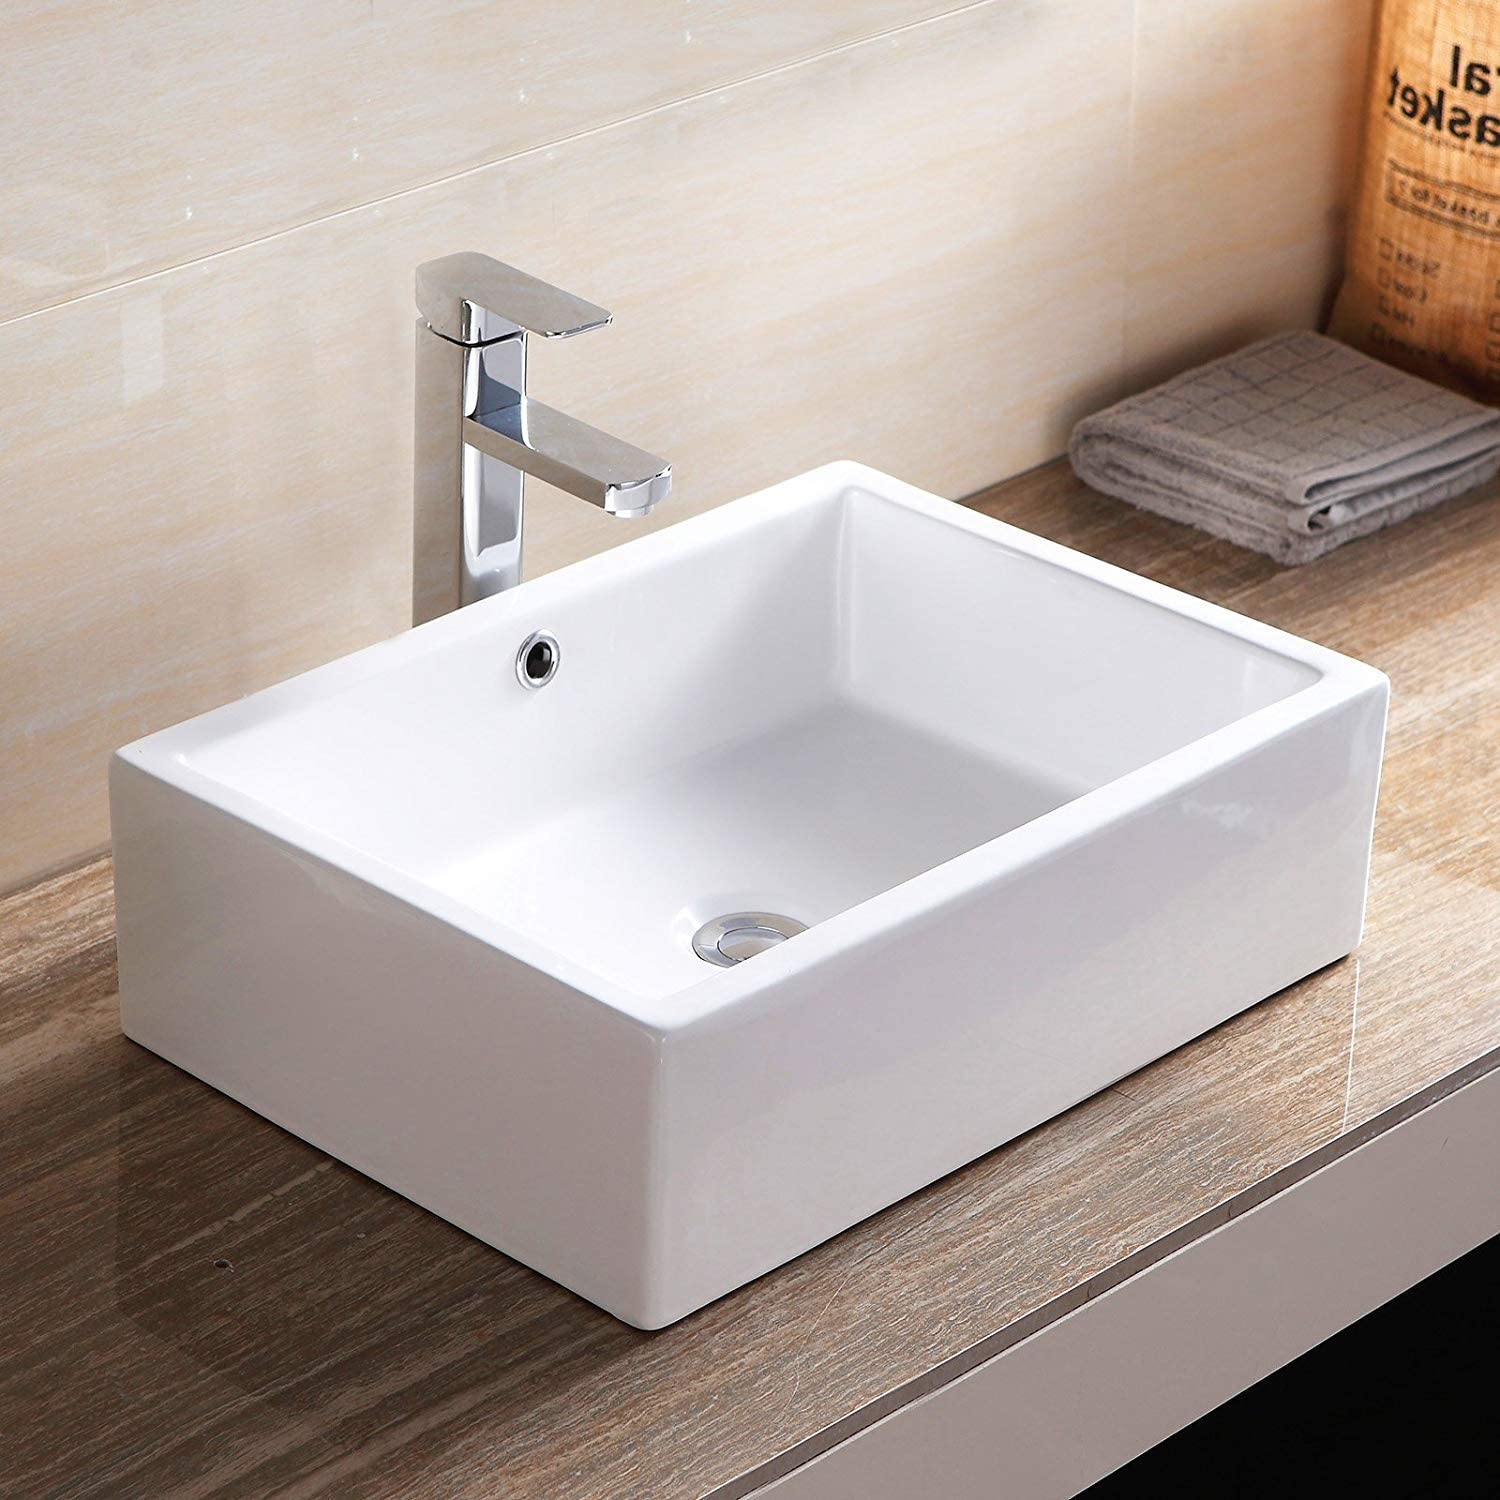 Mecor 20 x14.5 Rectangle Bathroom Ceramic Vessel Sink Basin White Vanity Sink with Pop -up Drain